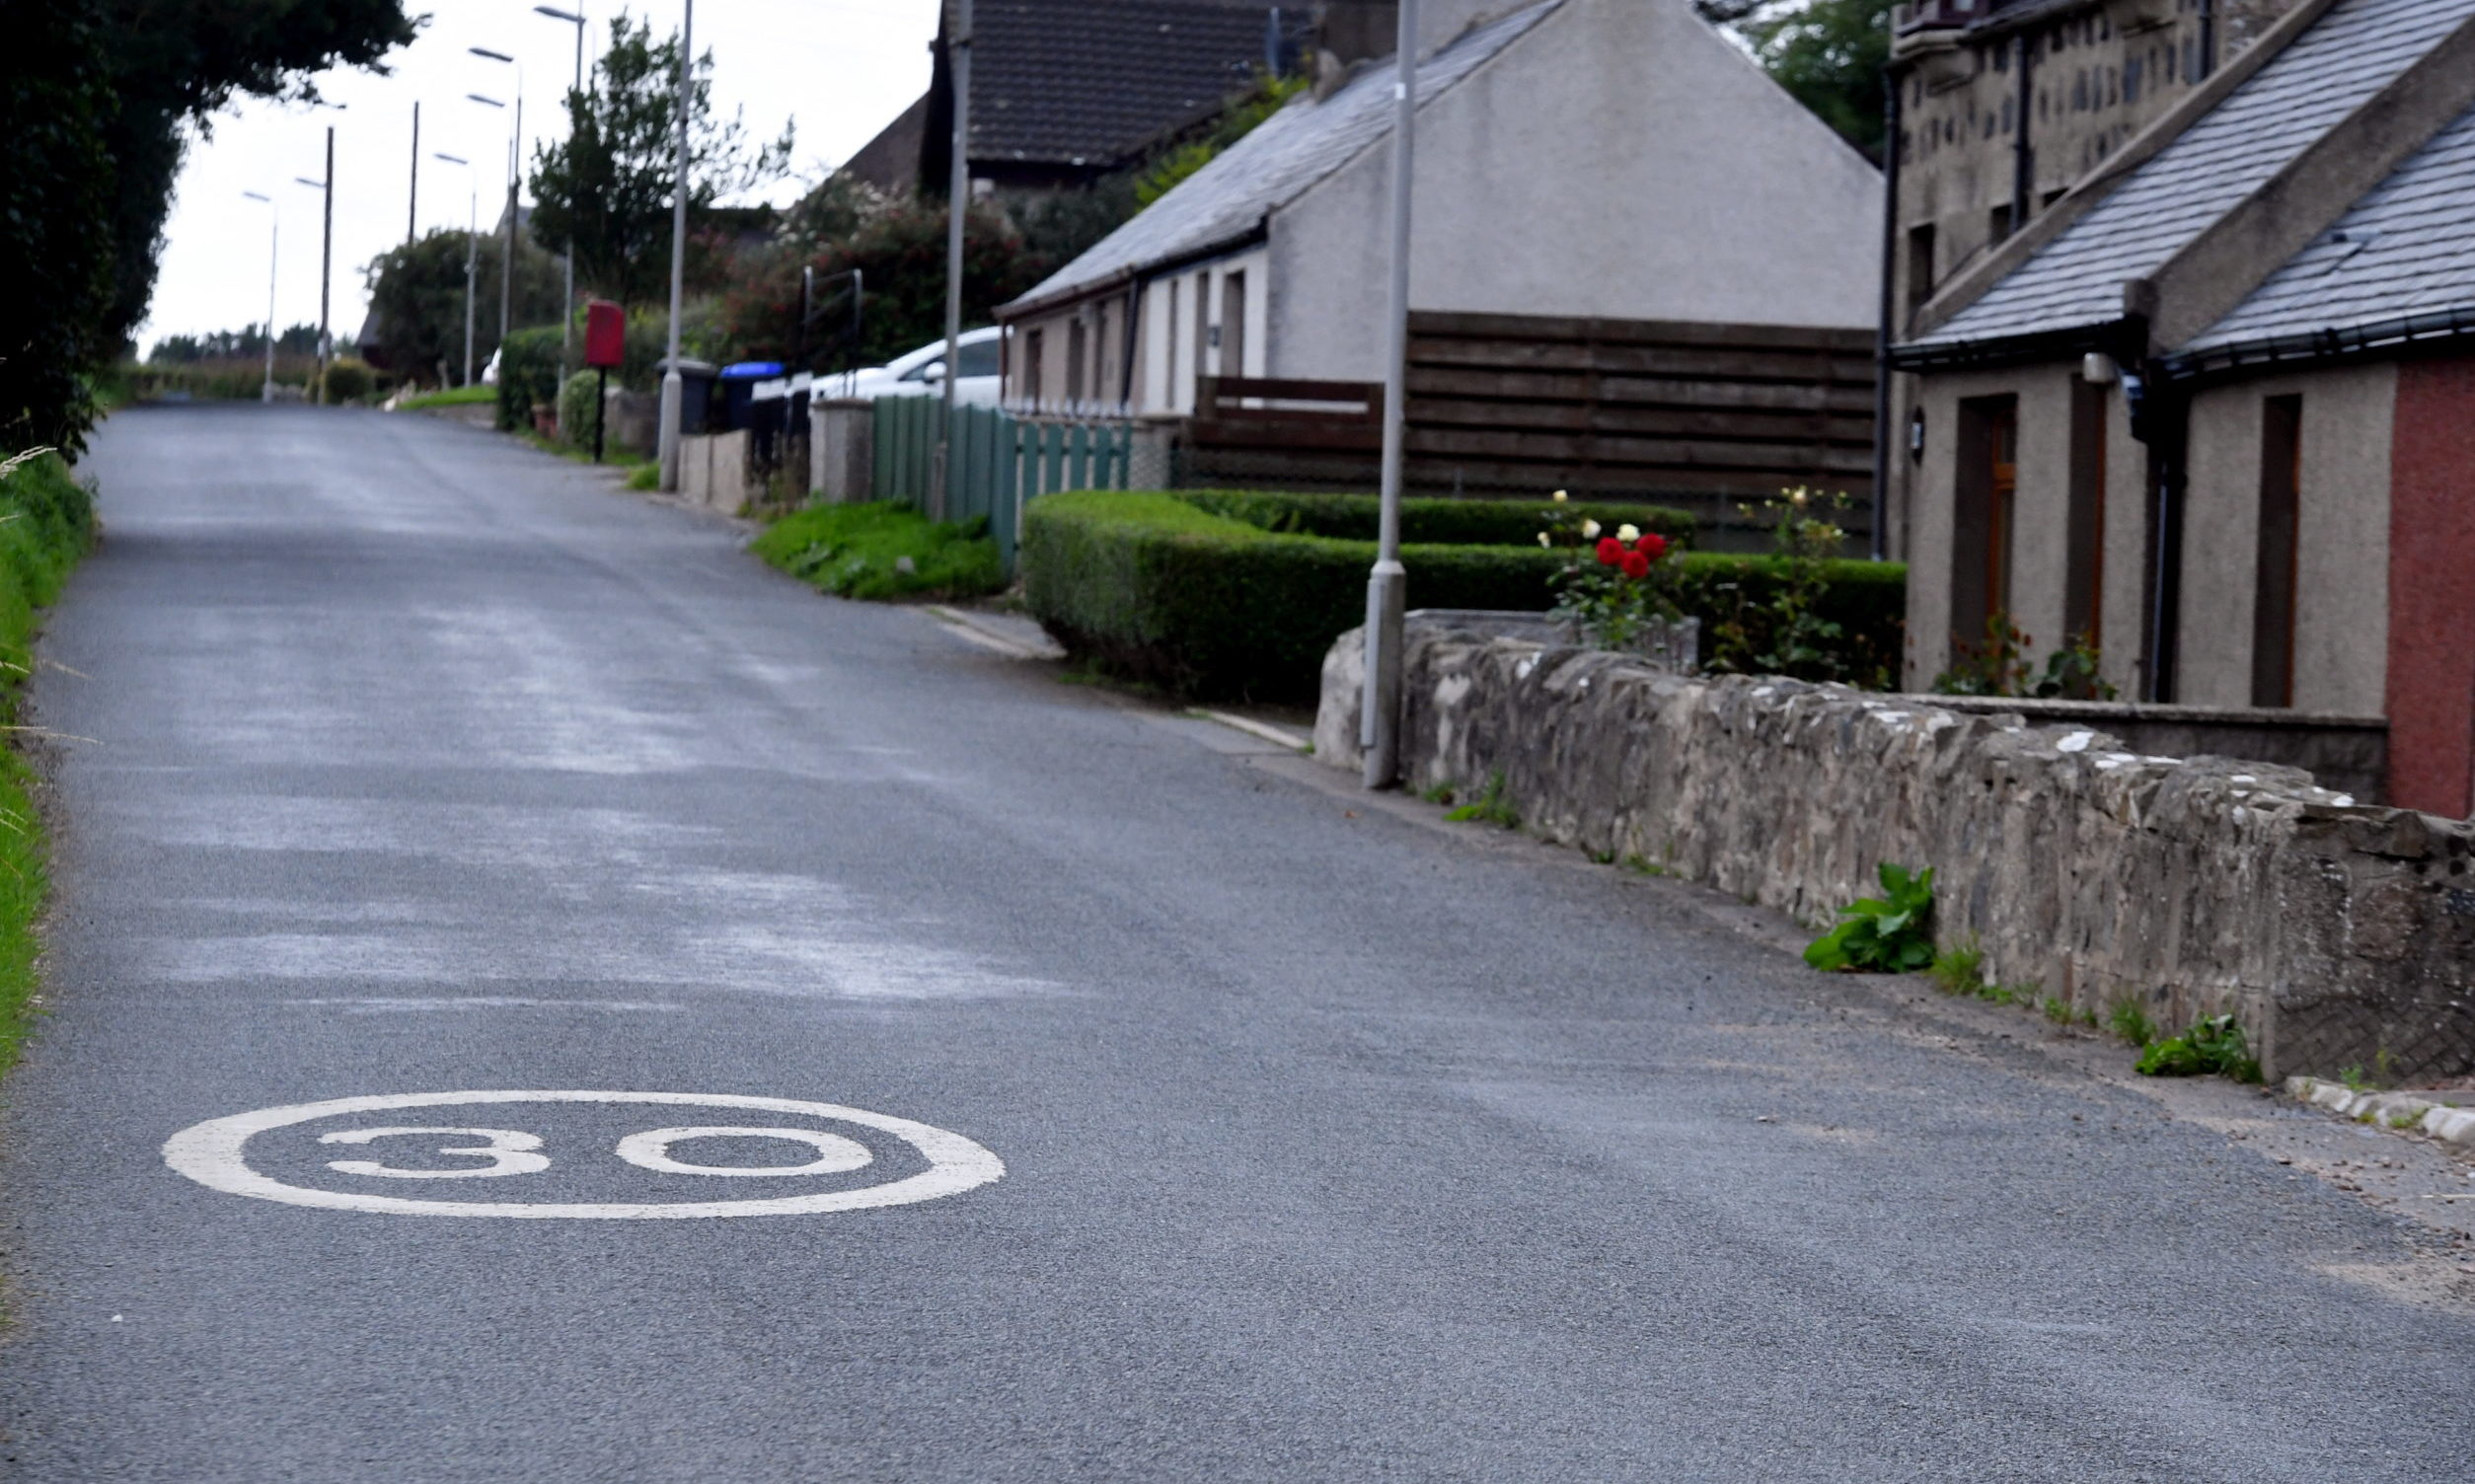 The Street in Rora is a 30mph zone but studies have found motorists pass through at an average of 43mph.